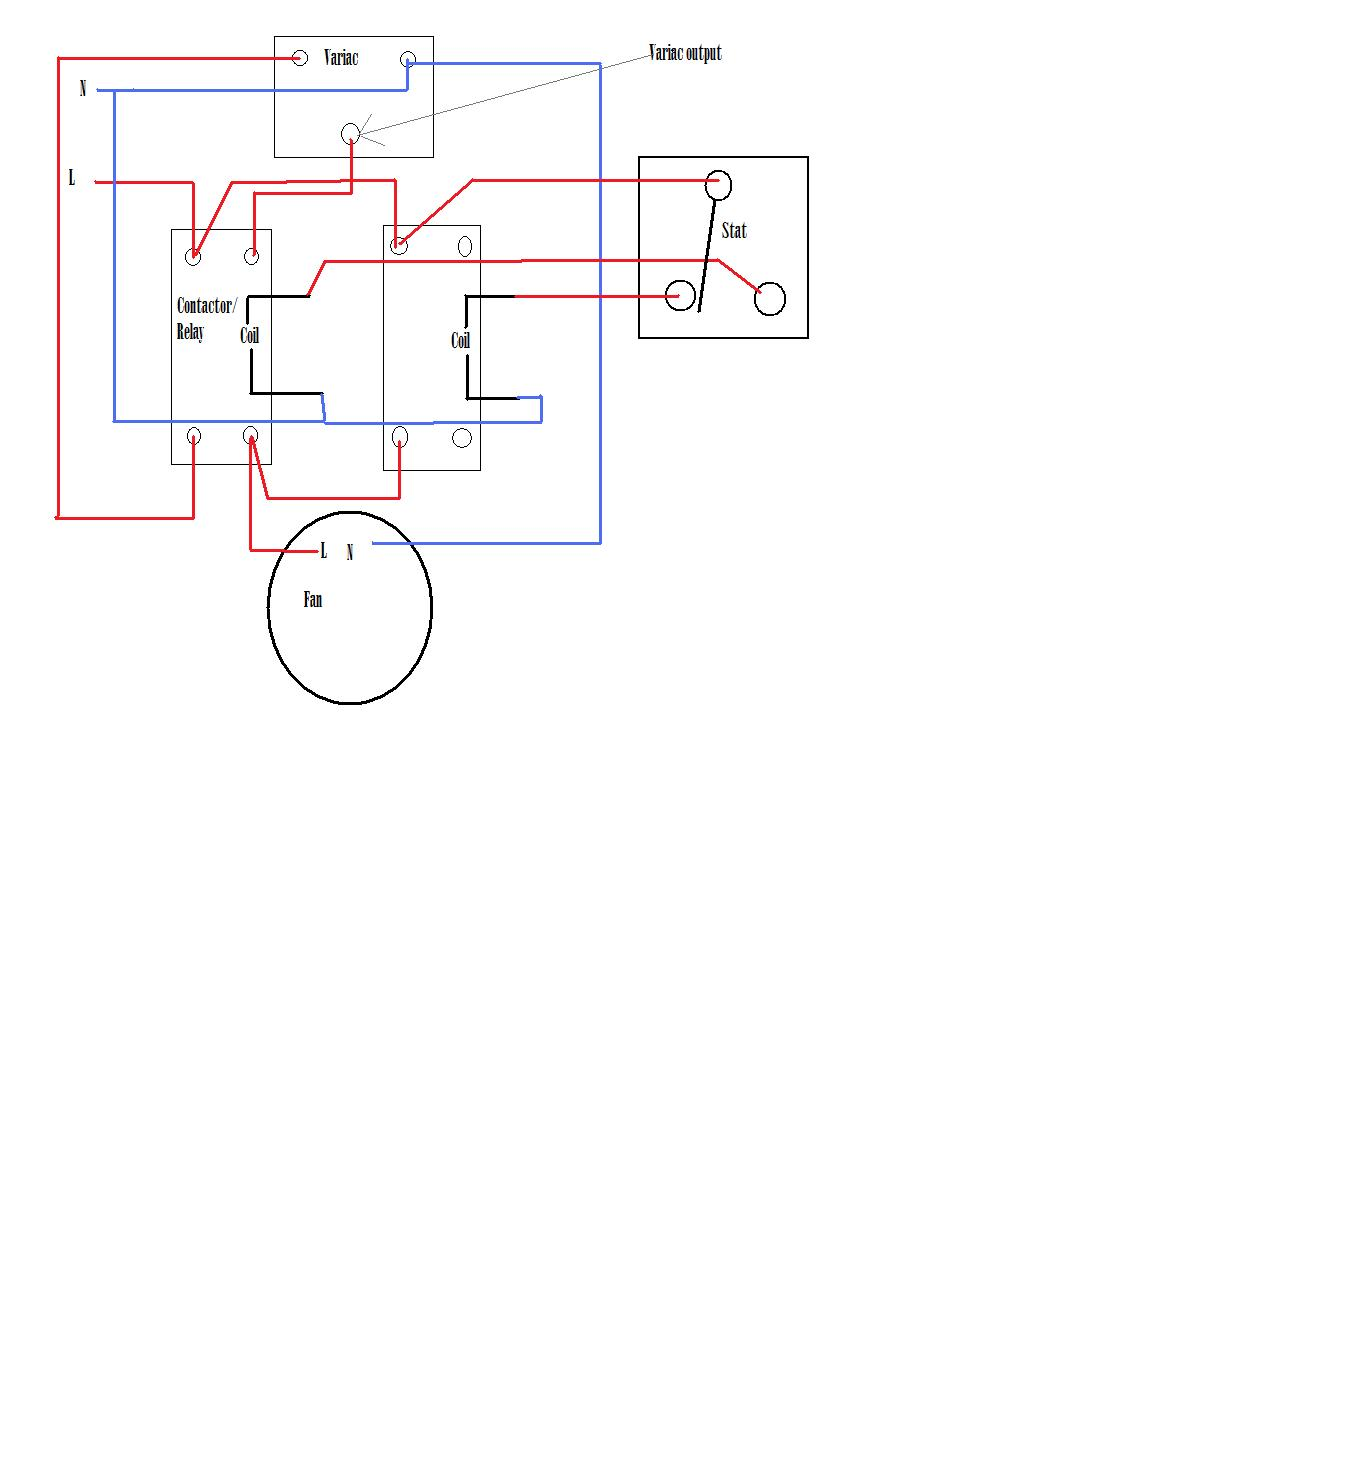 Honeywell T6360b Spdt Room Thermostat Wiring Diagram Wiring – Room Thermostat Wiring Diagram